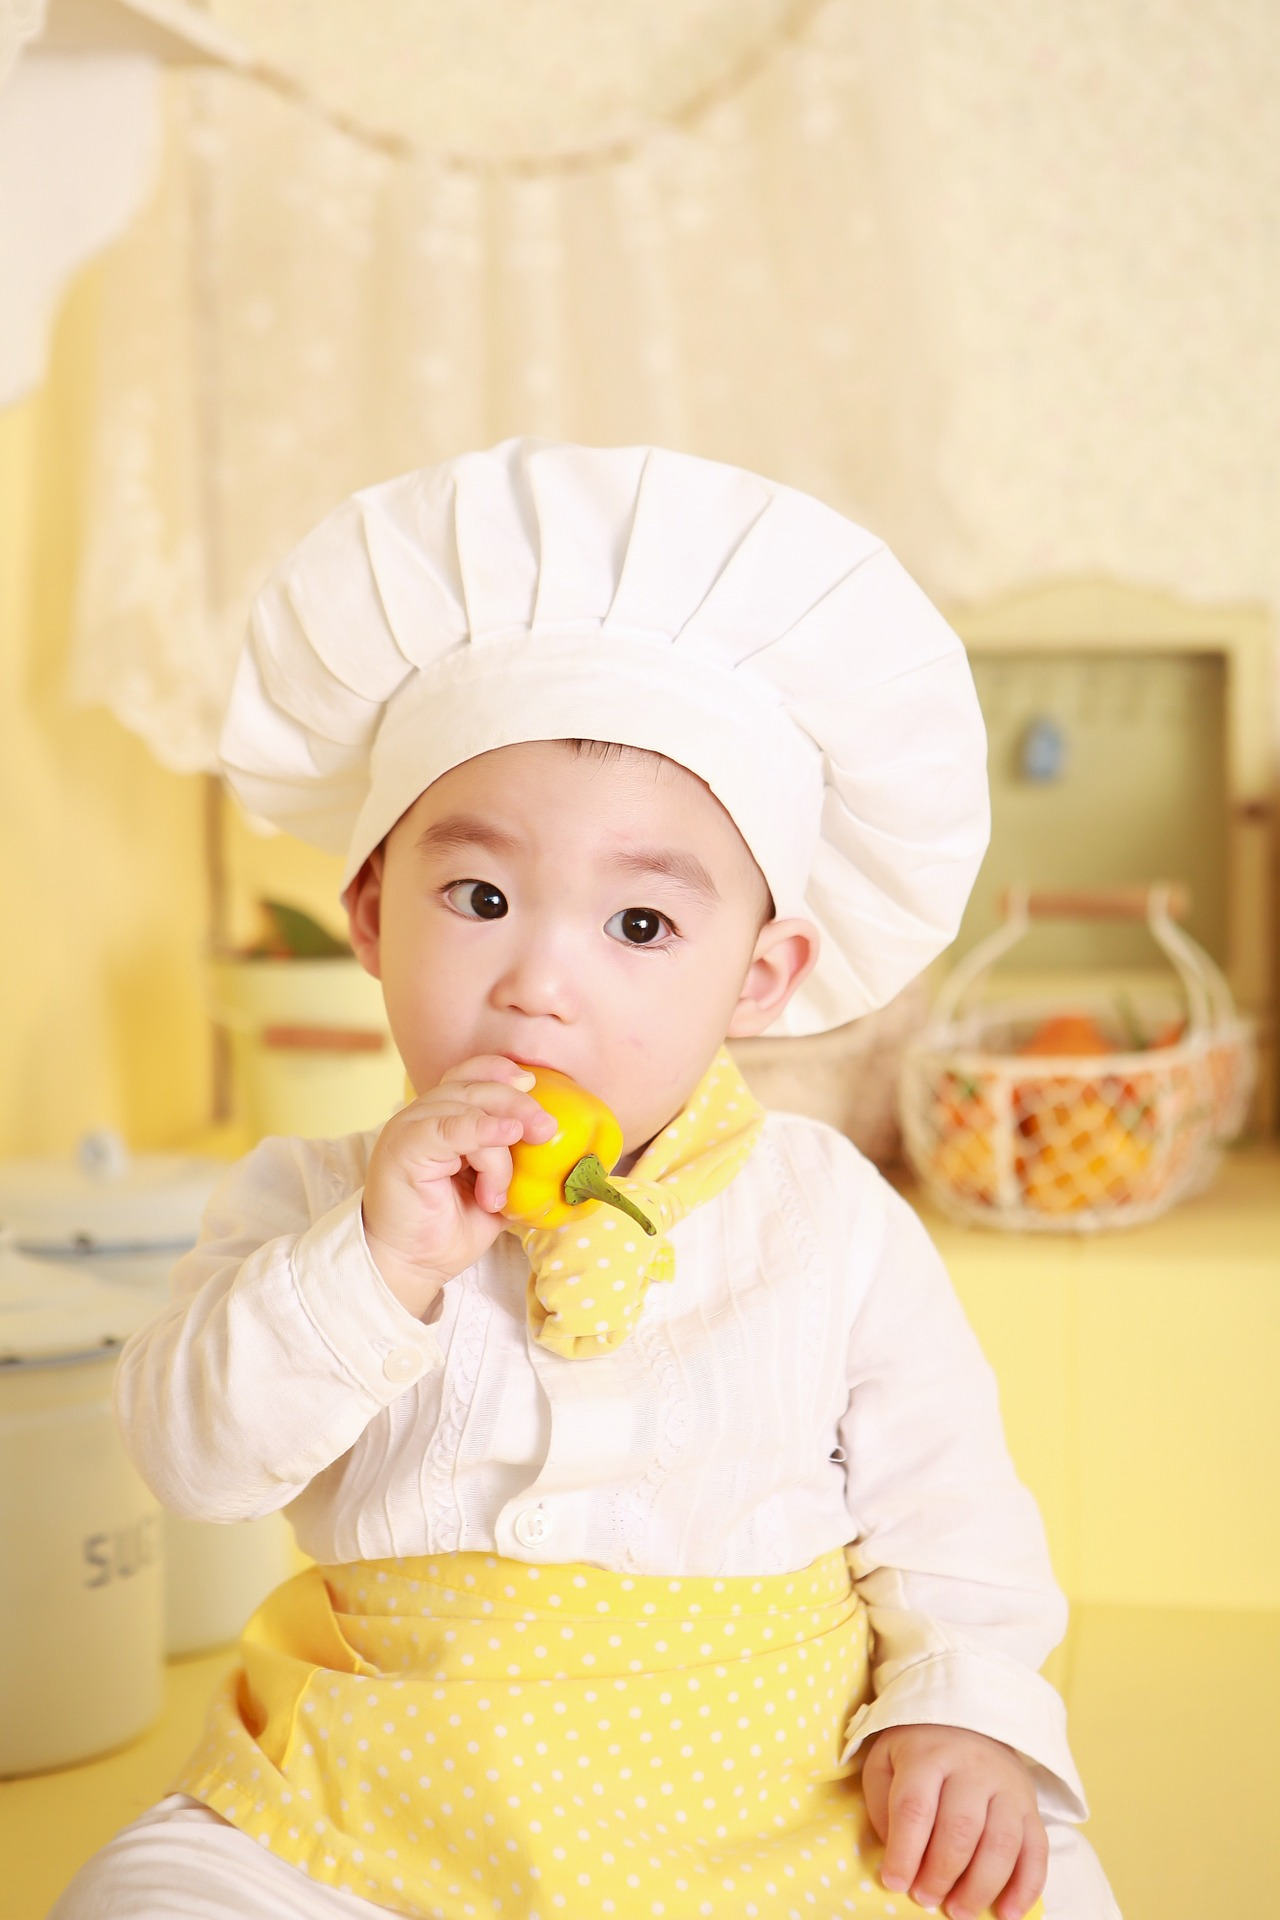 cooking-775503_1920